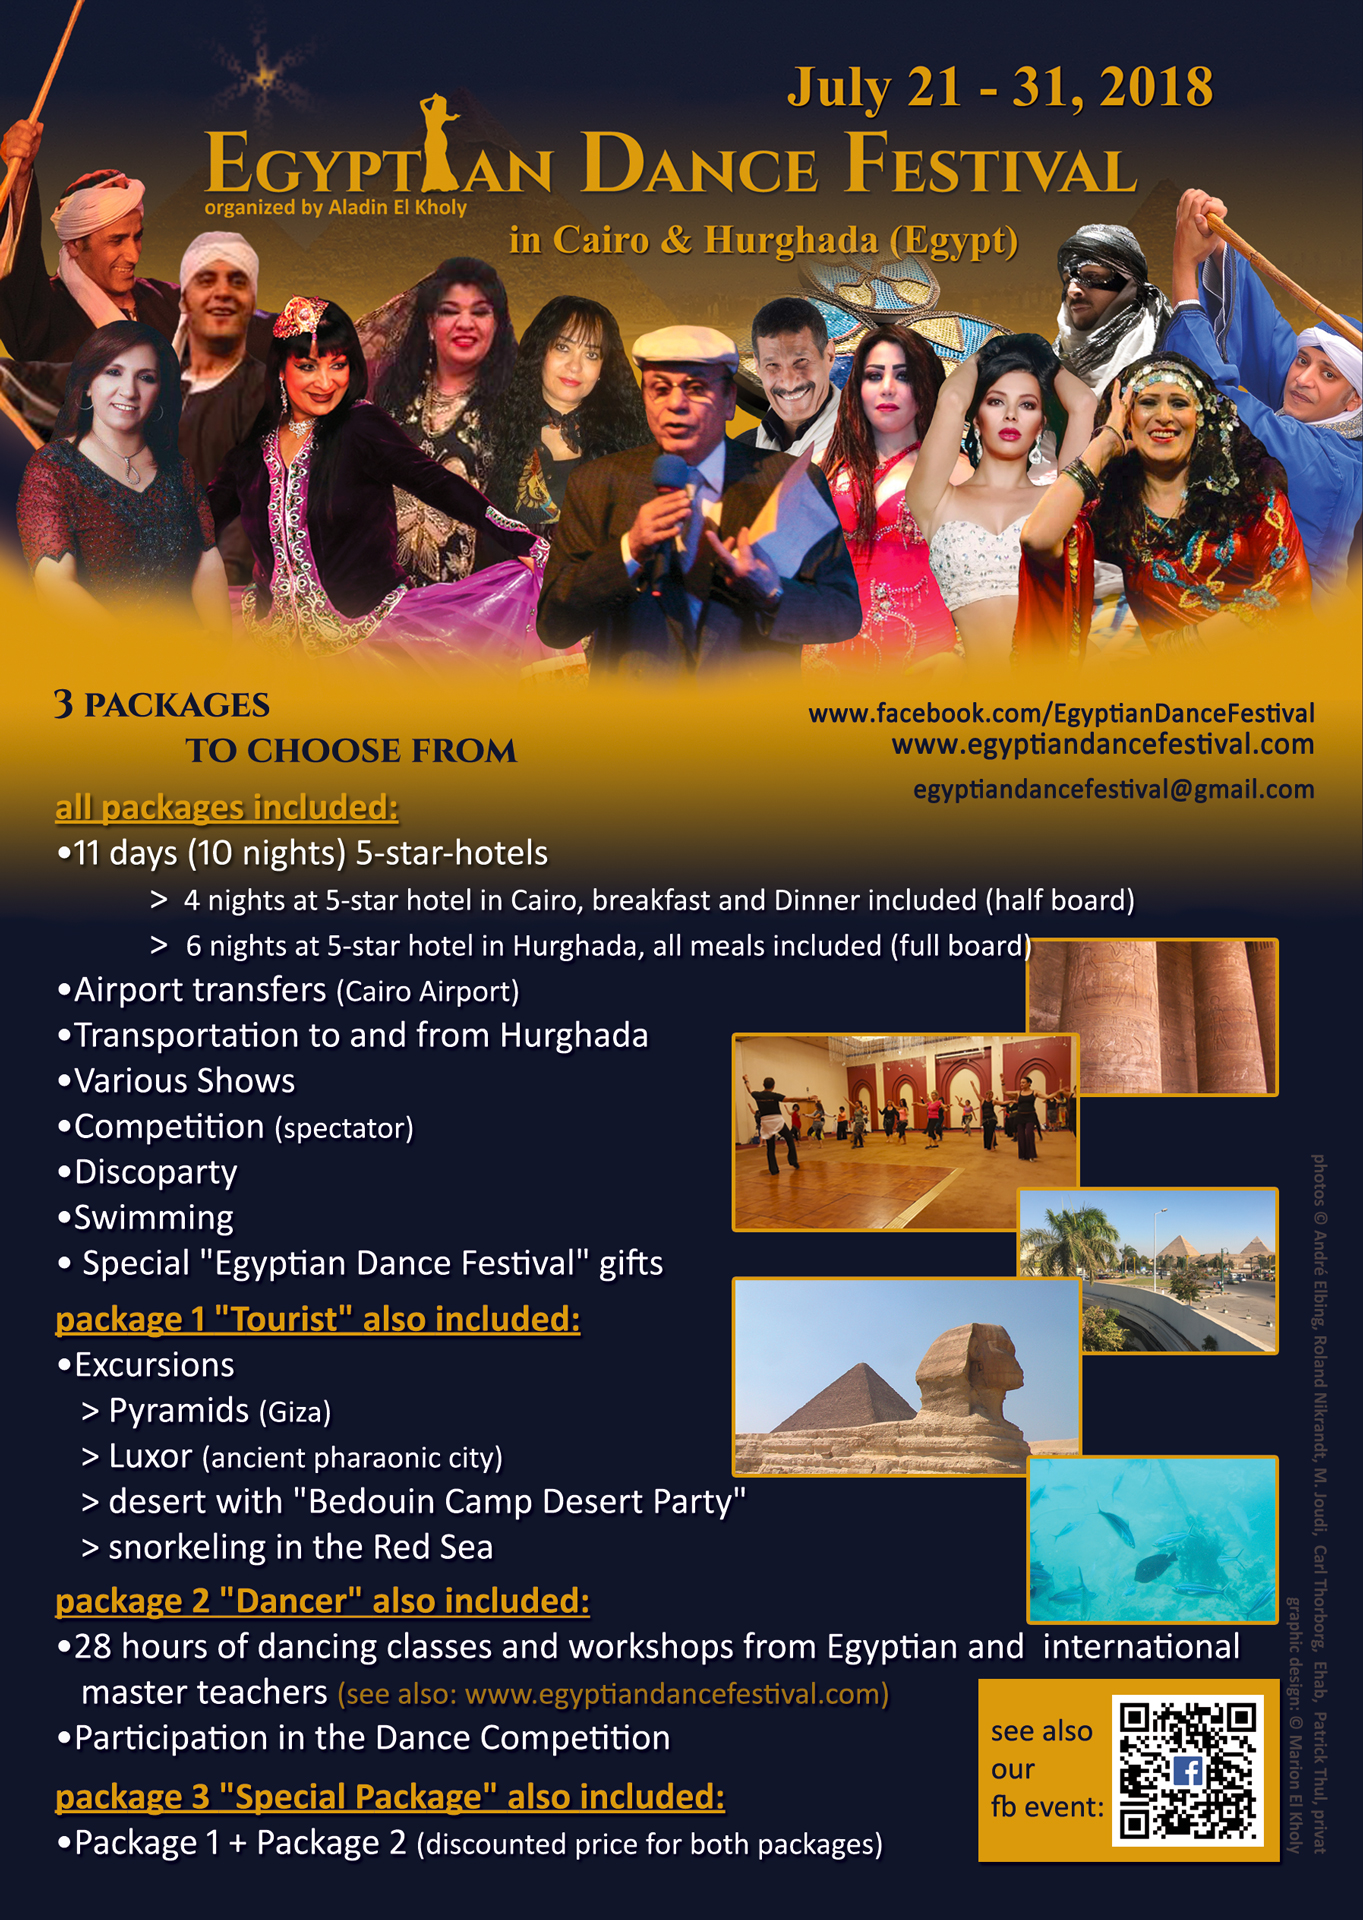 Flyer 2018 (english) Egyptian Dance Festival in Cairo & Hurghada organized by Aladin El Kholy